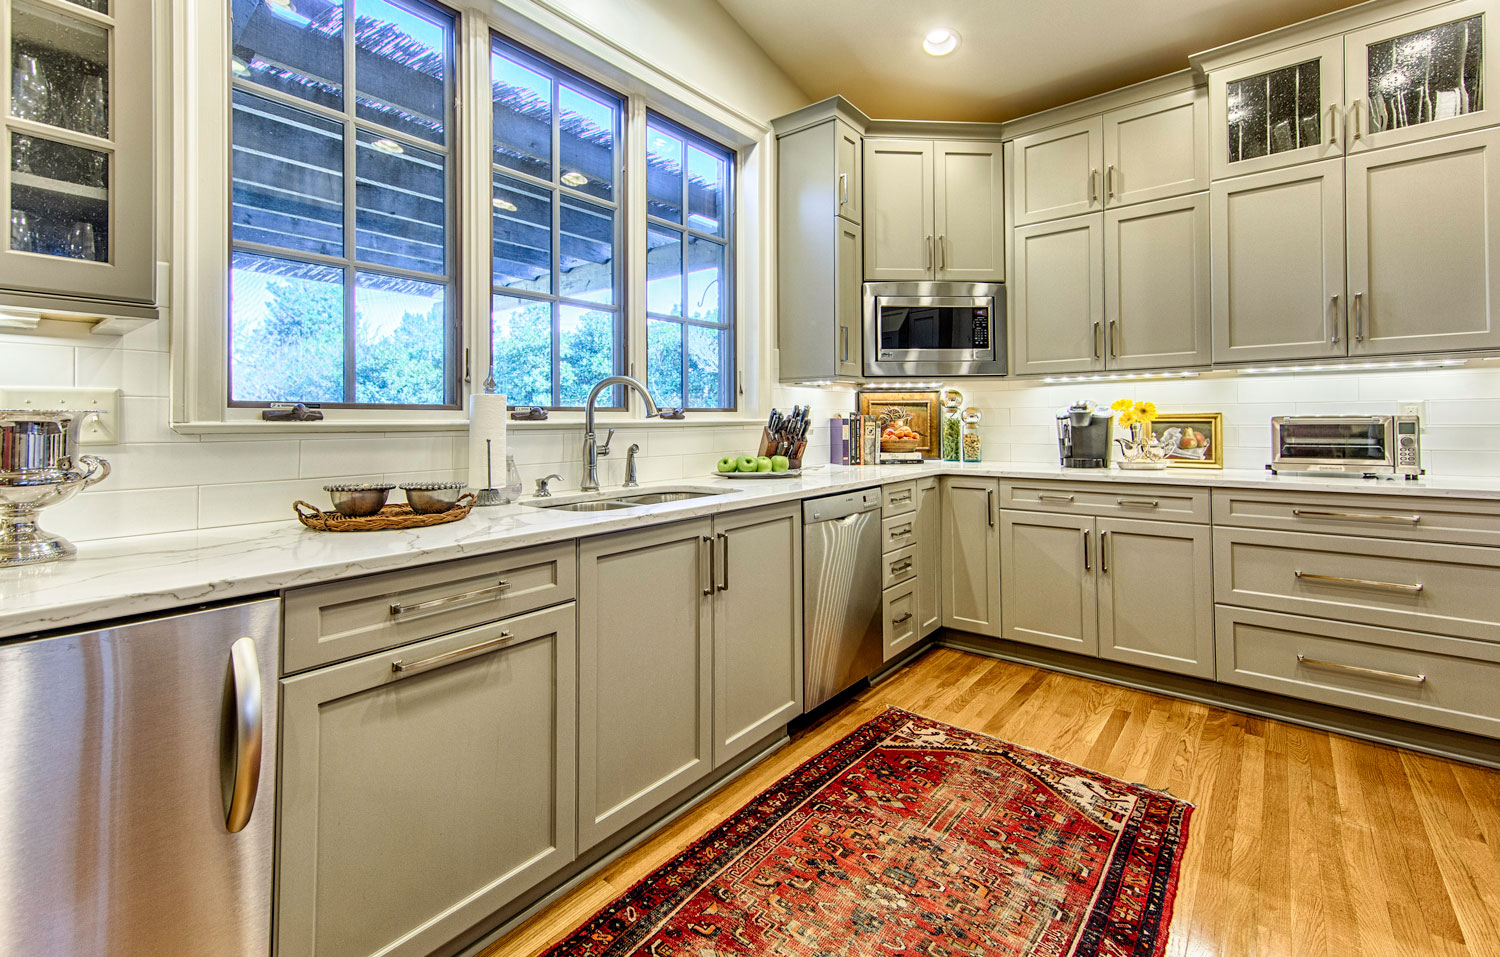 During your next kitchen remodel, consider an age in place design to ensure you can stay at your home longer.